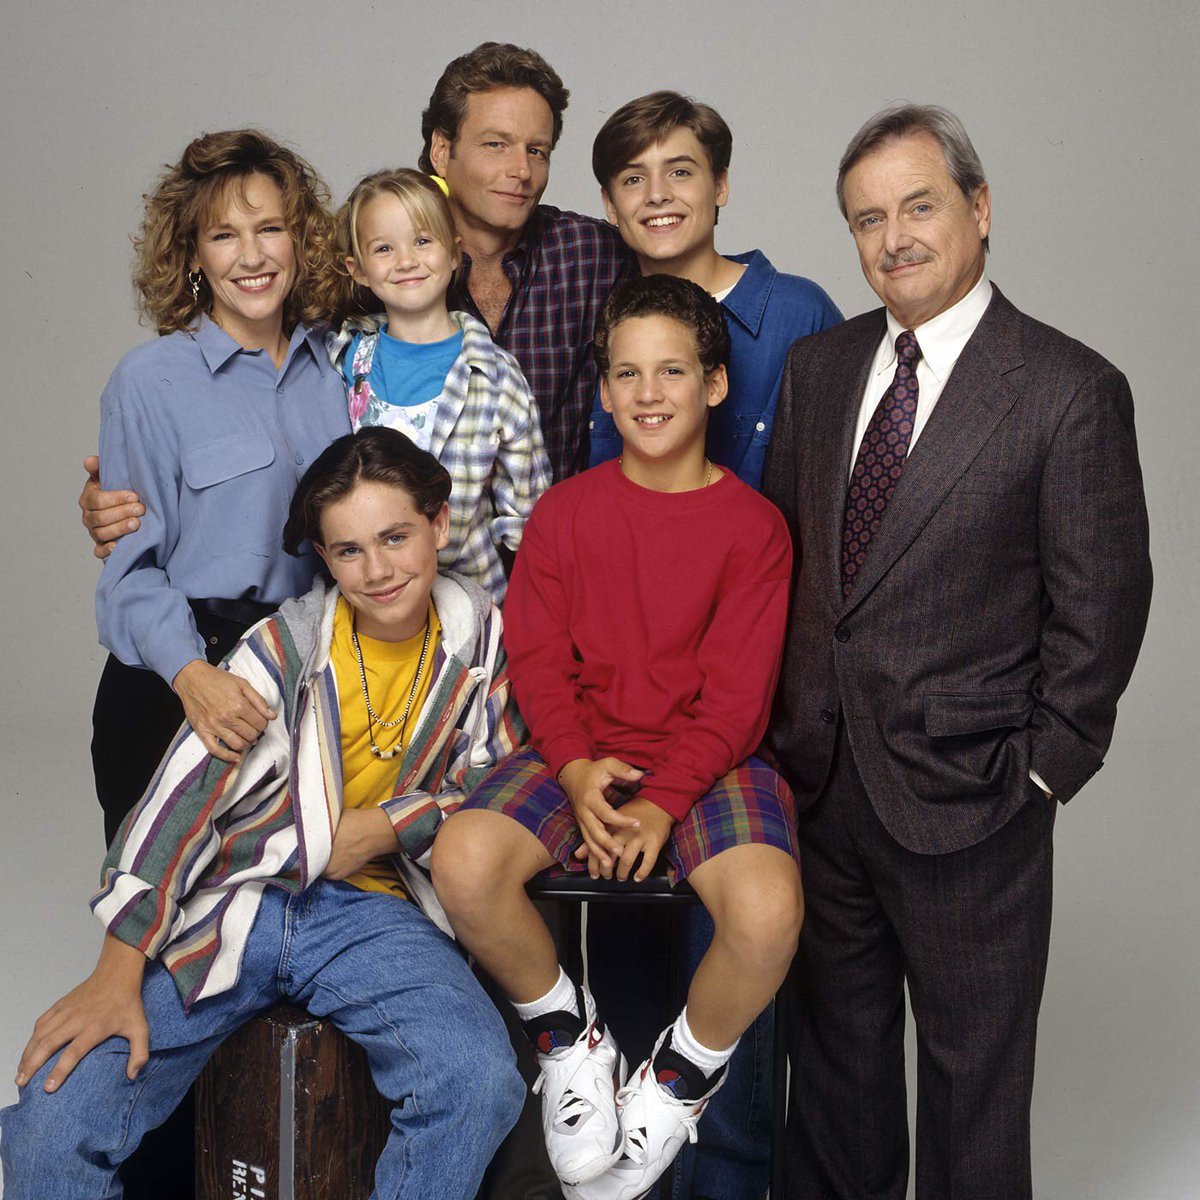 Premiered 27 years ago today. Do the Feeny call one time today in honor of one of the great sitcoms of the 90s. #boymeetsworld https://t.co/PP58WcXVU5